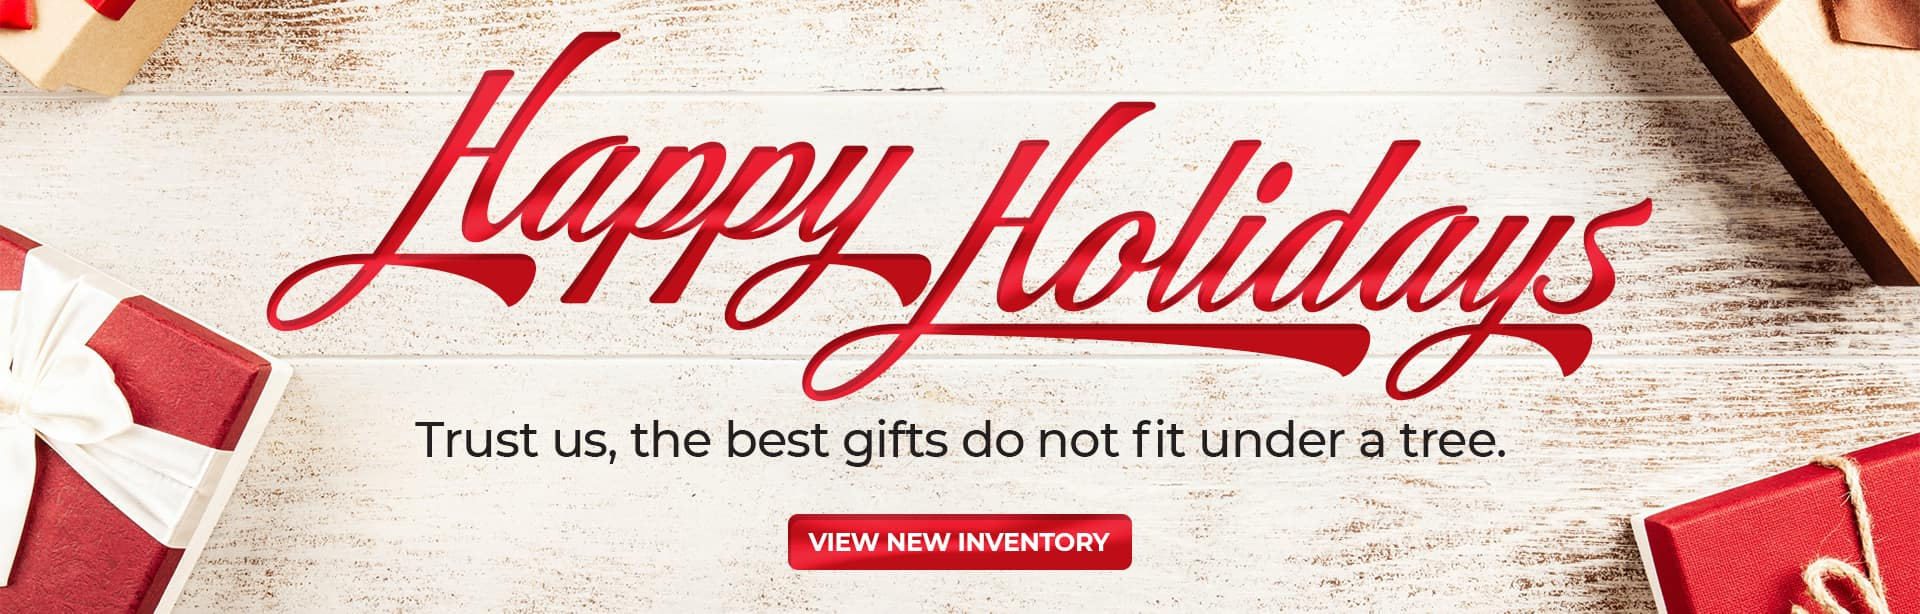 Happy Holidays from Ernst Toyota